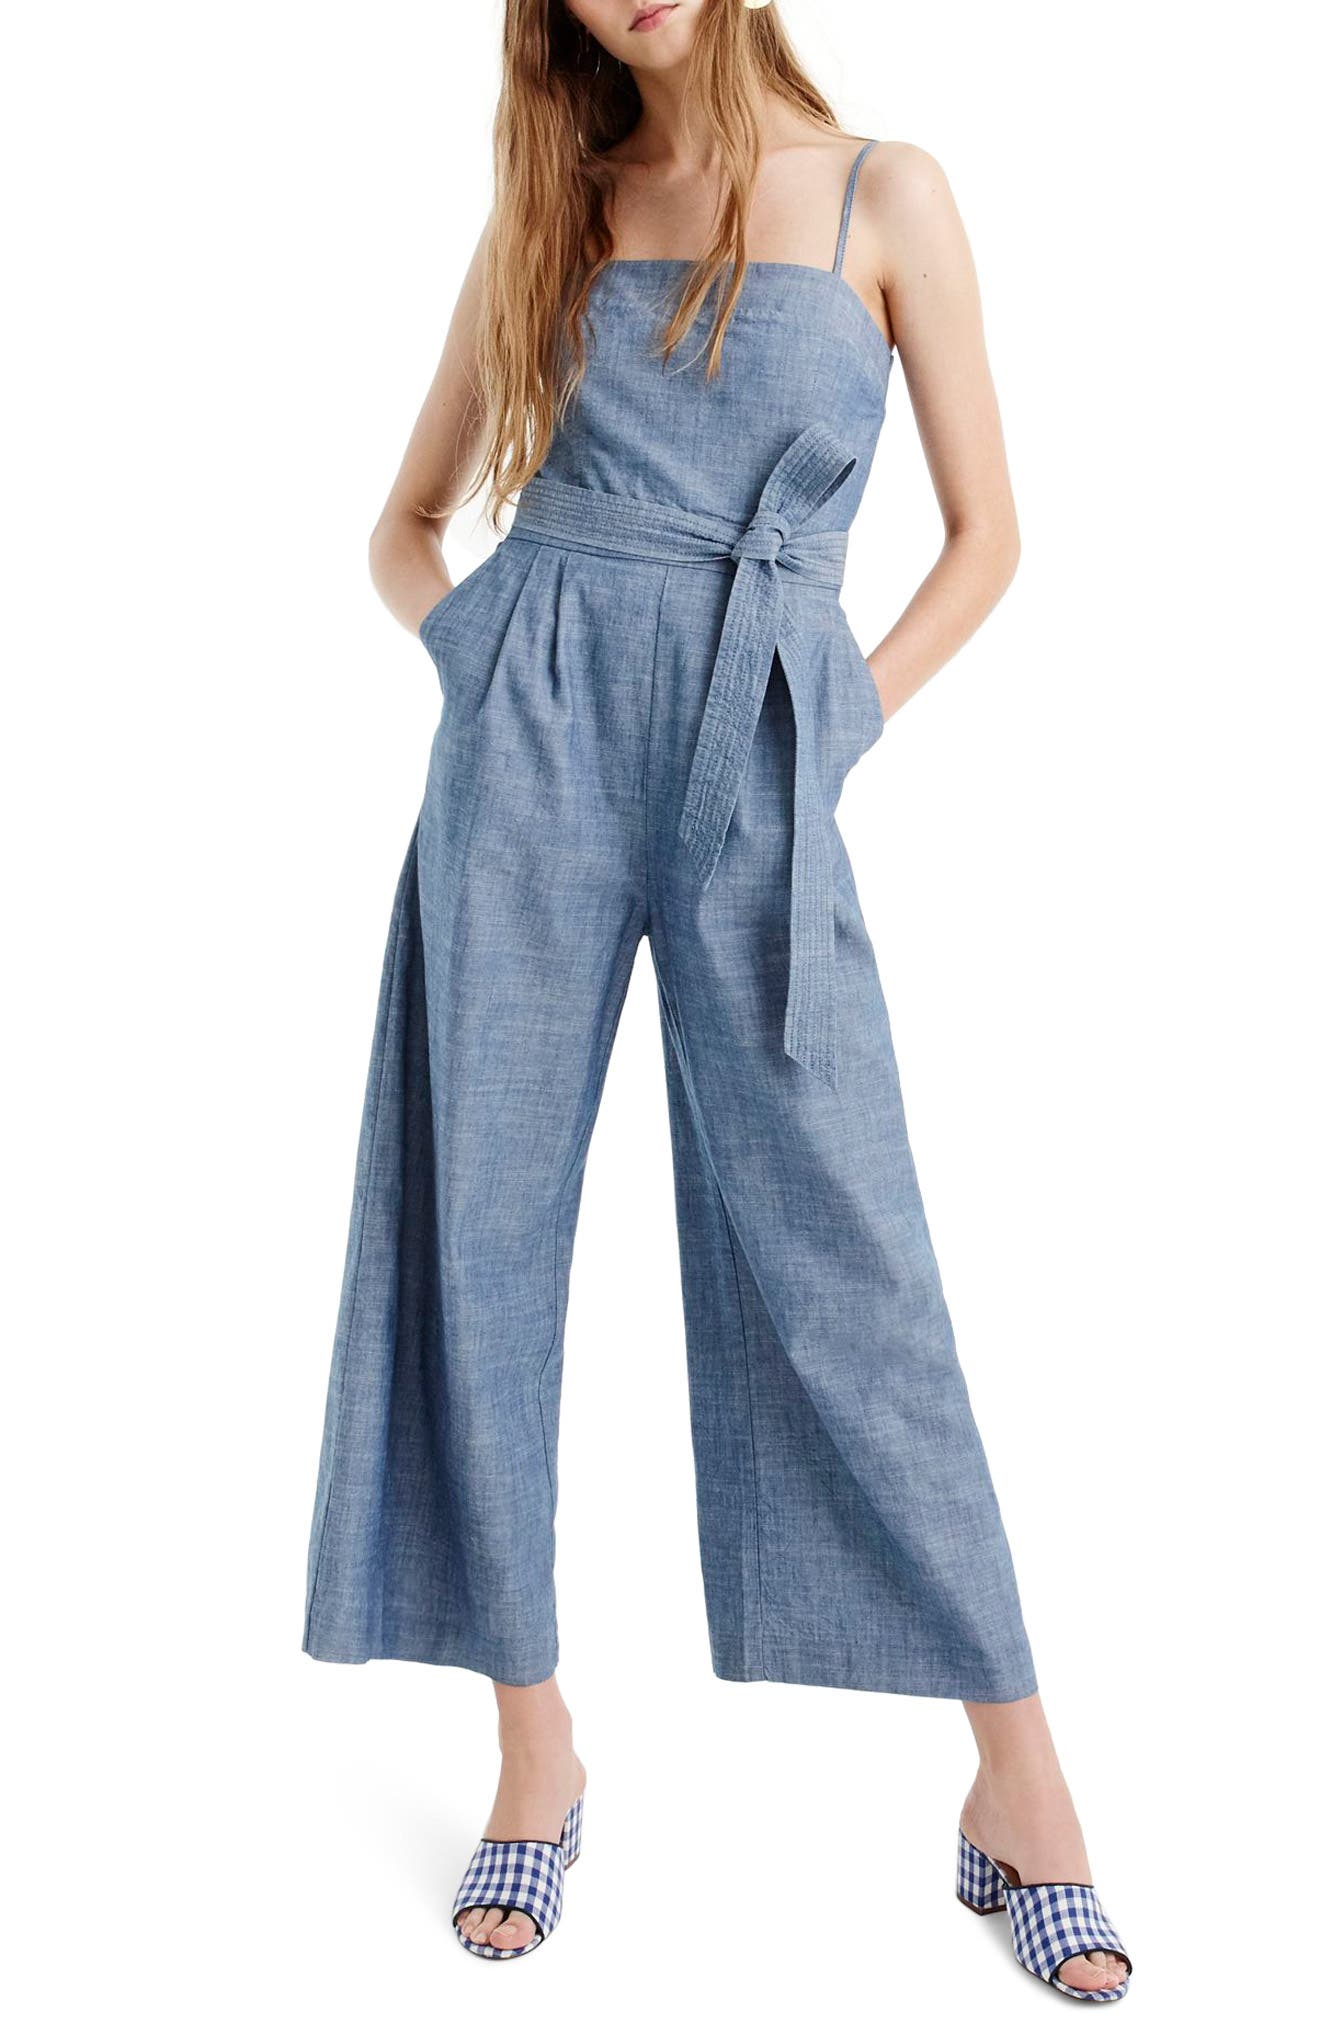 Marseille Cotton Chambray Jumpsuit,                             Main thumbnail 1, color,                             400